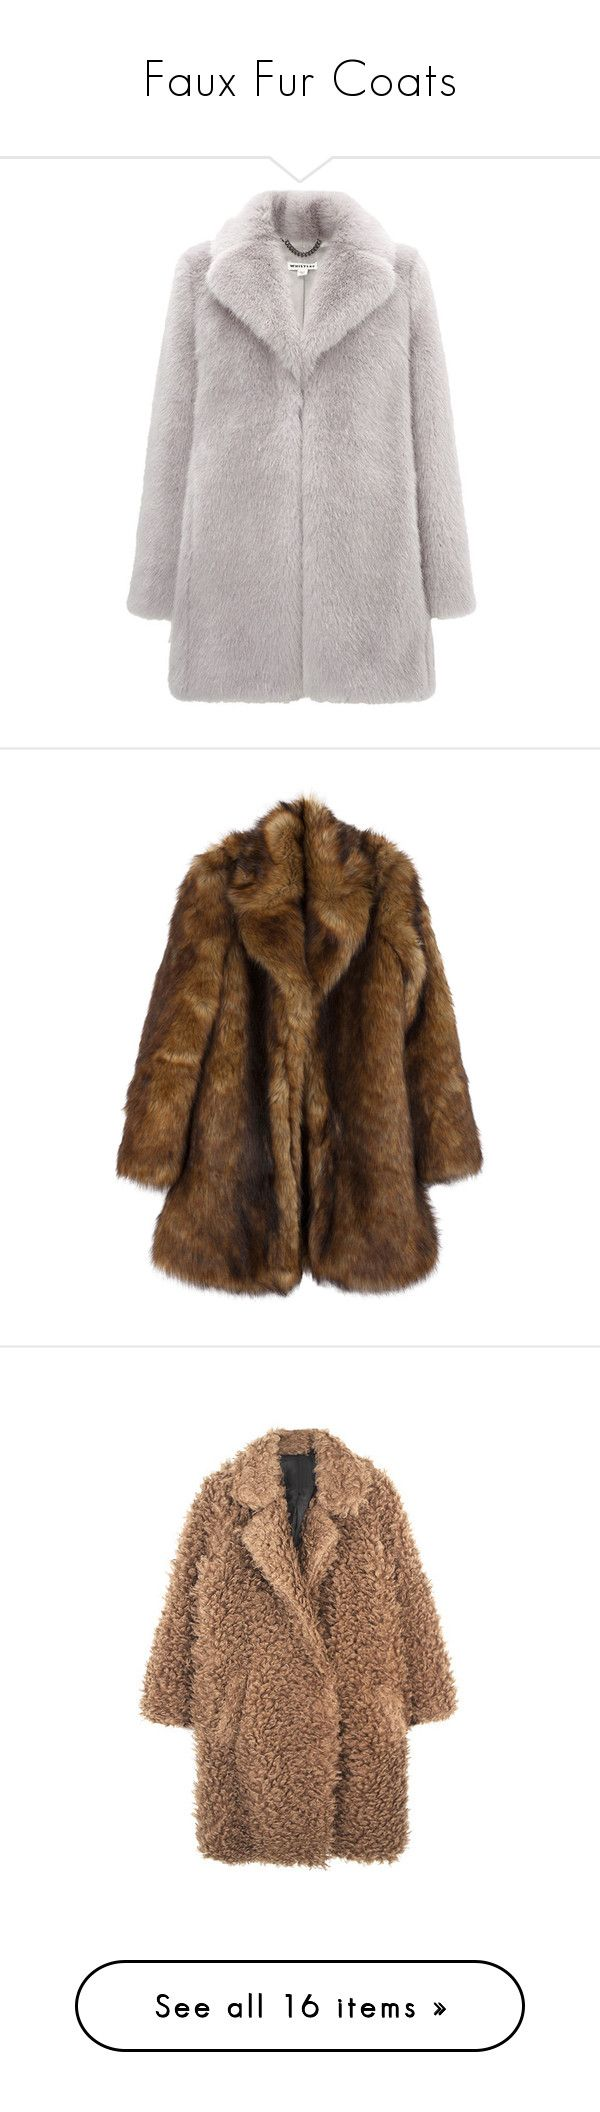 """""""Faux Fur Coats"""" by fashionlandscape ❤ liked on Polyvore featuring outerwear, coats, jackets, coats & jackets, lilac, faux fur coat, whistles coat, imitation fur coats, fake fur coats and tops"""